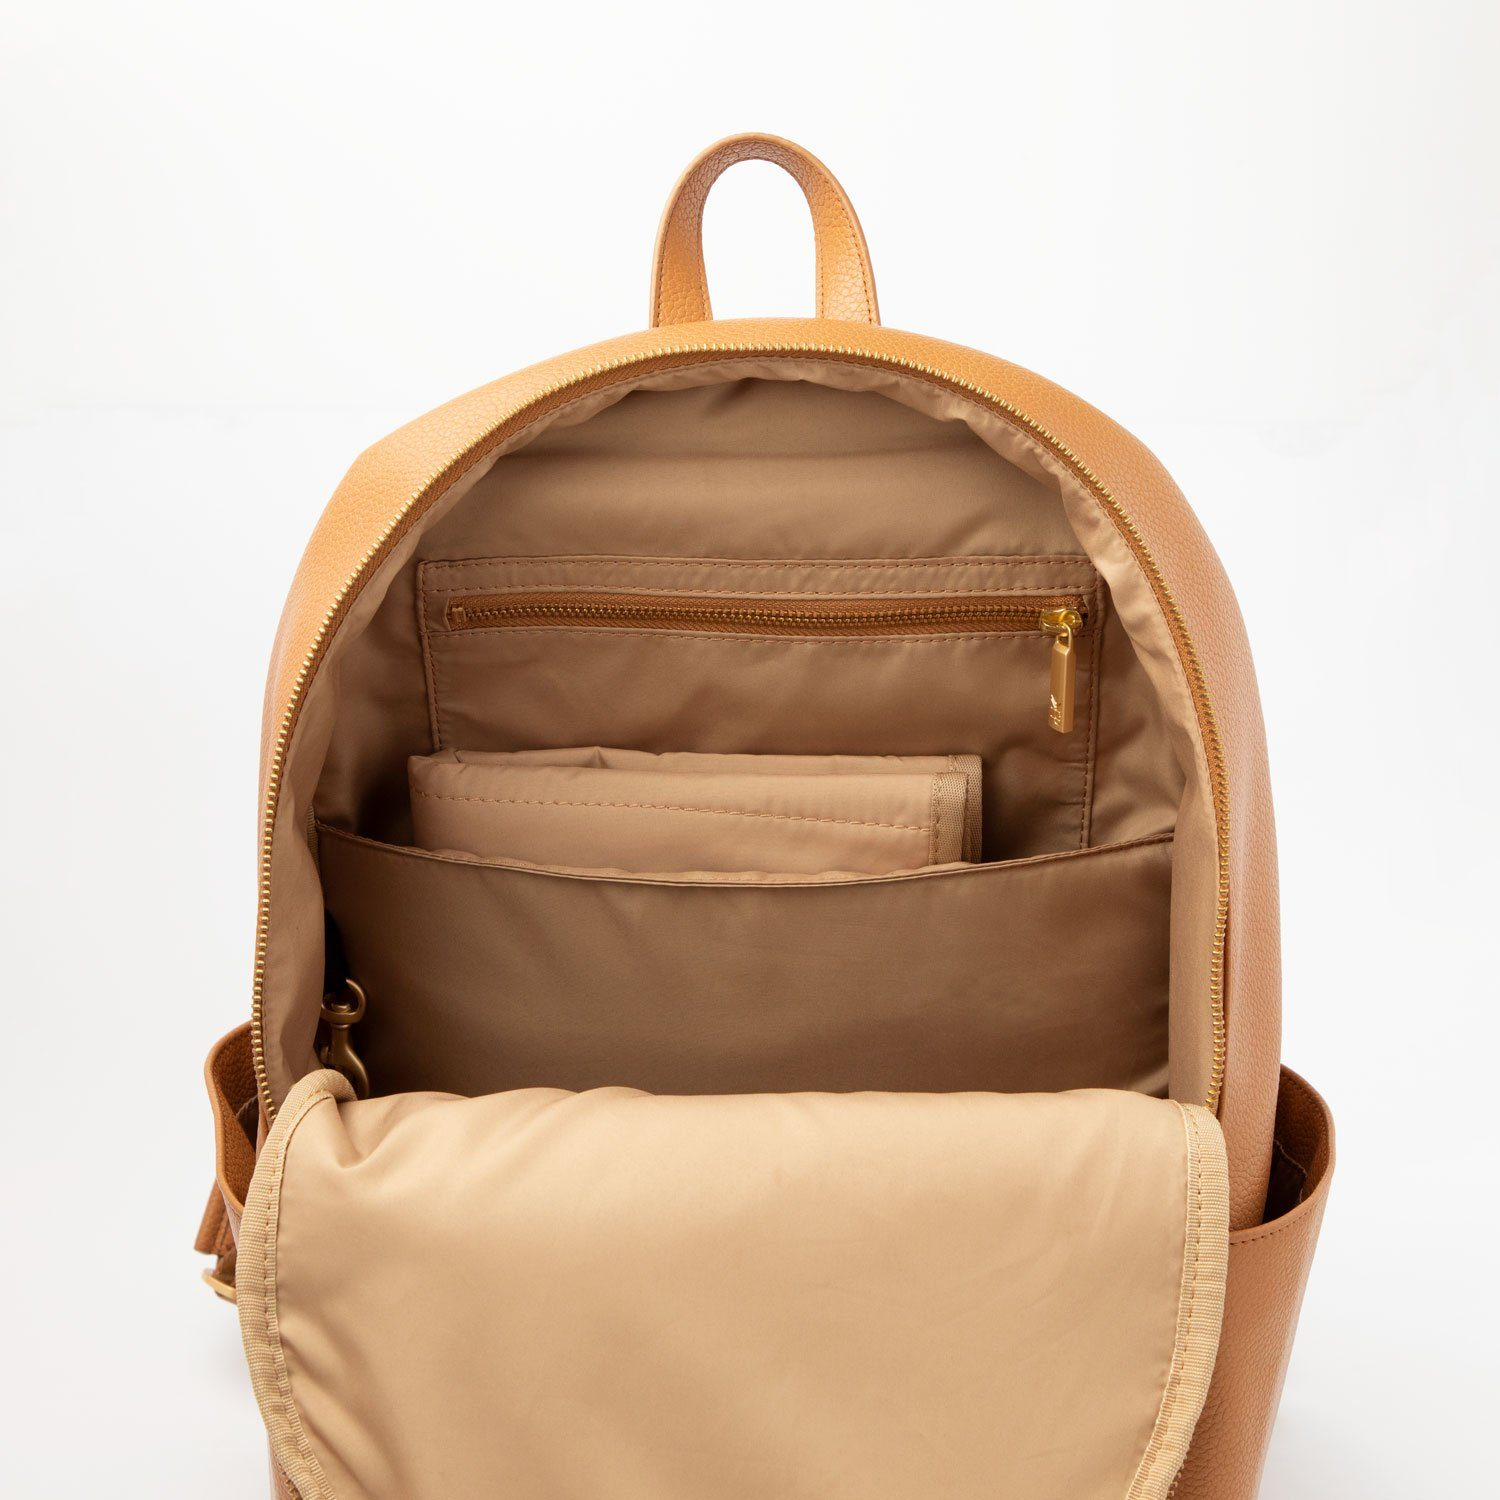 Butterscotch Classic City Pack | Pre-Order Classic City Pack Bags